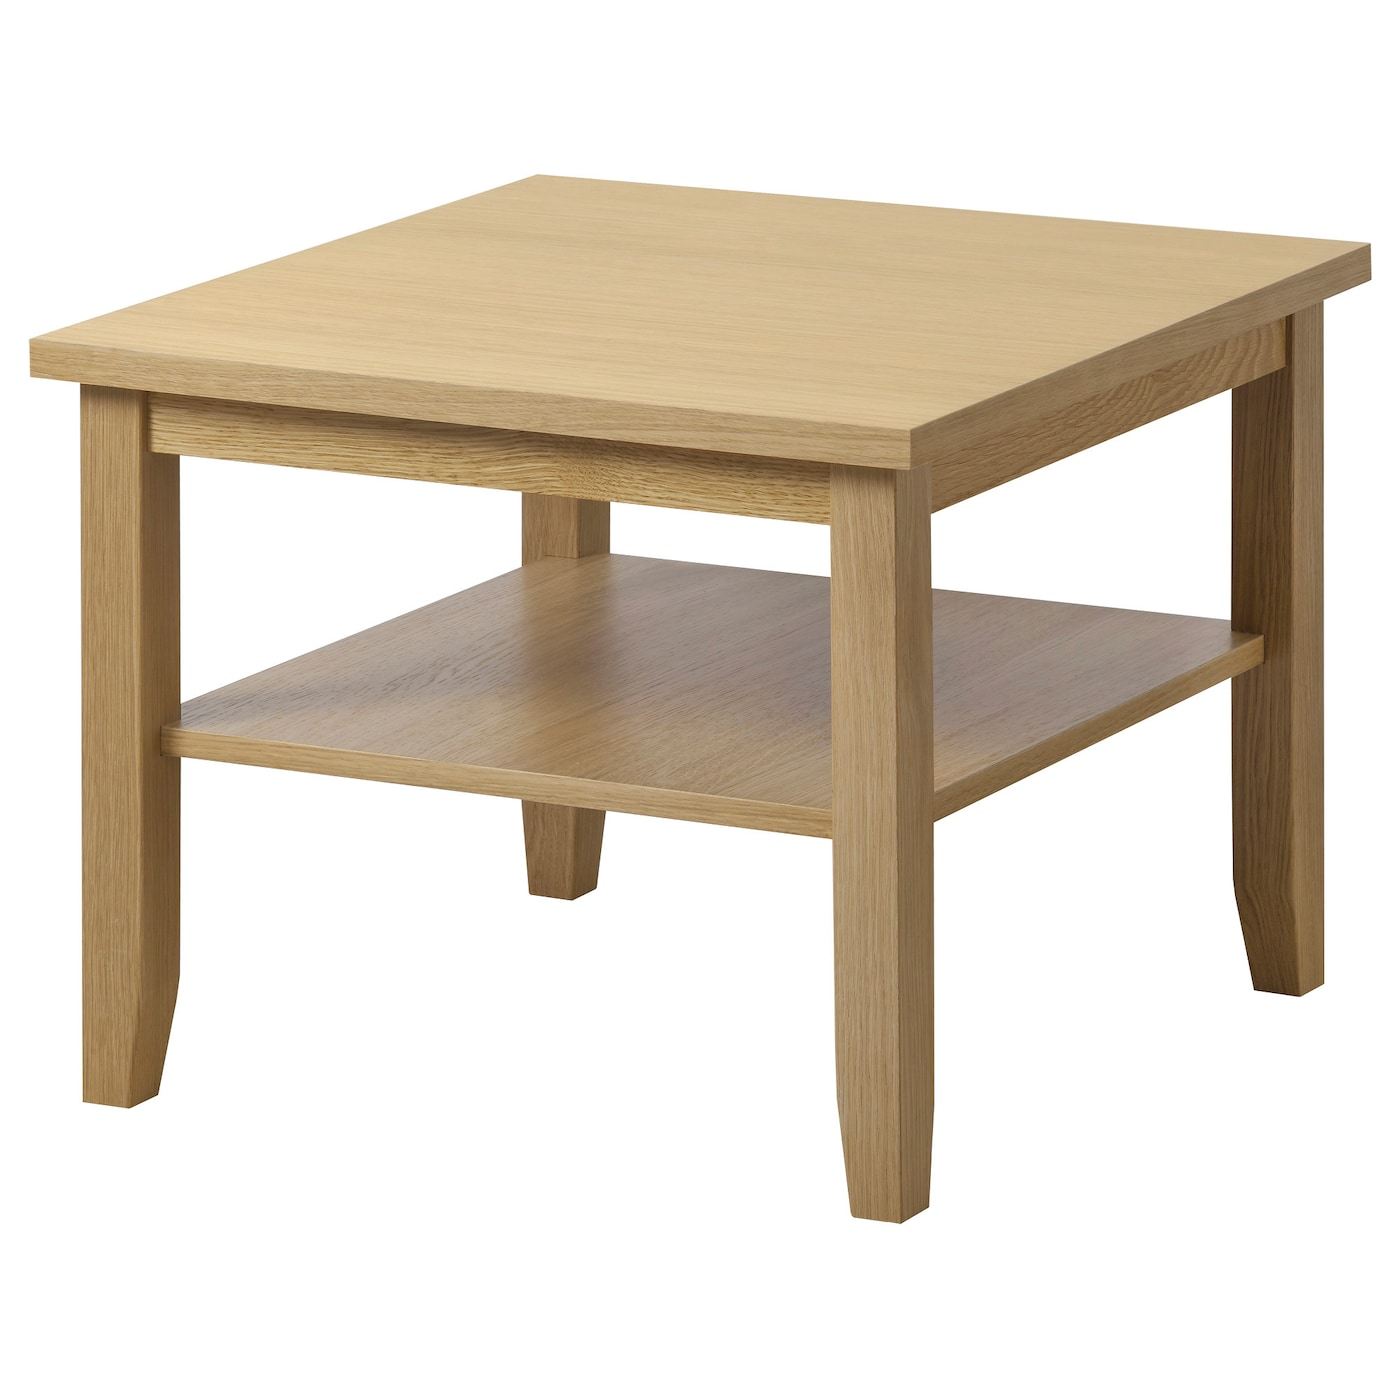 SKOGHALL Coffee table Oak 55x55 cm IKEA